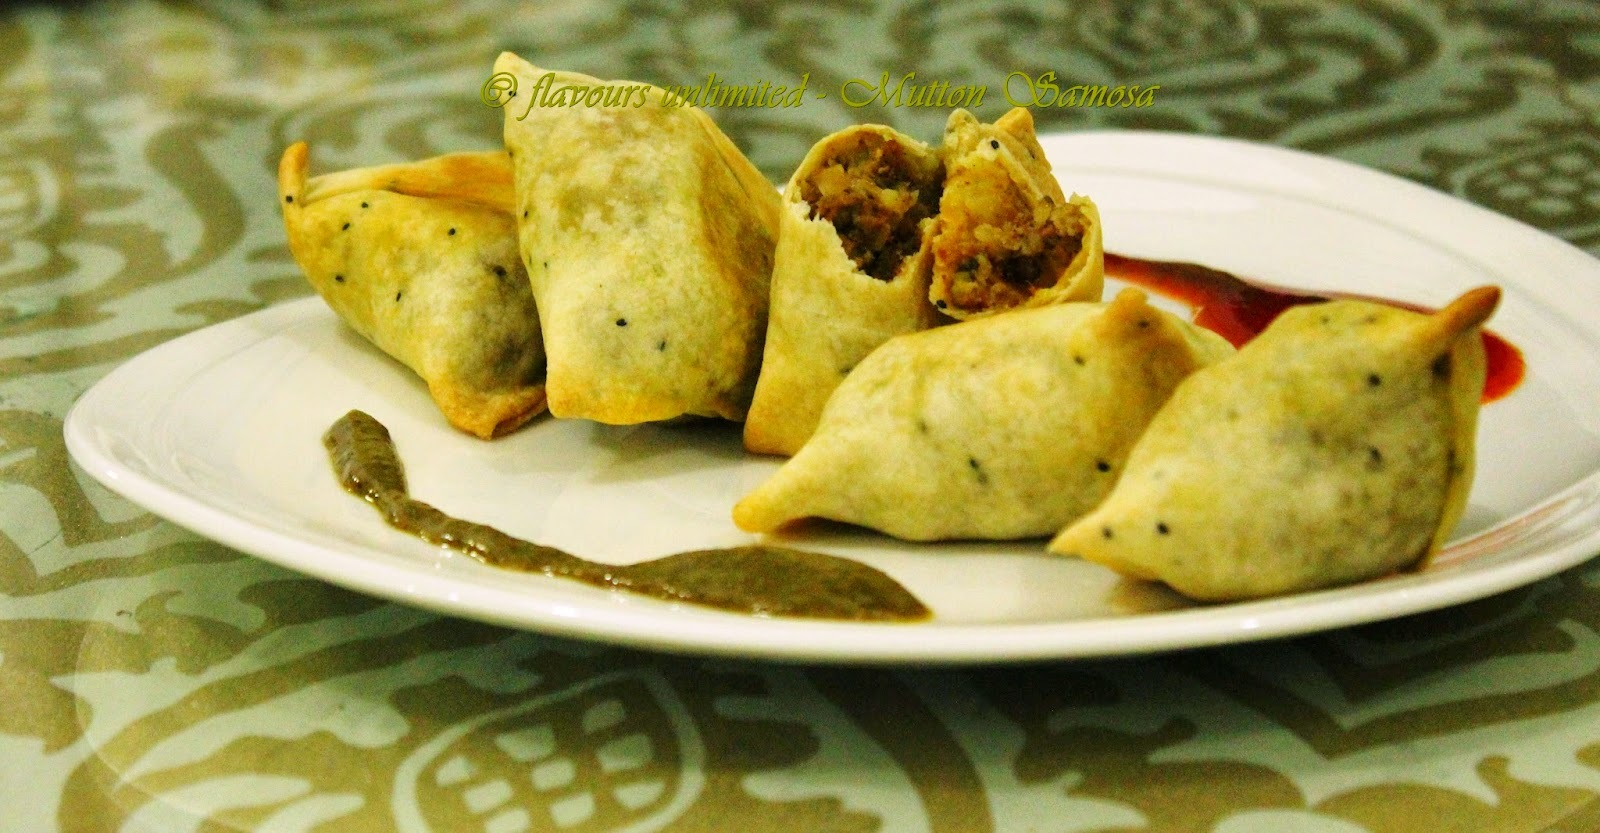 Mutton Keema Samosa - Ofcourse Baked for the Perfect Sunday Evening